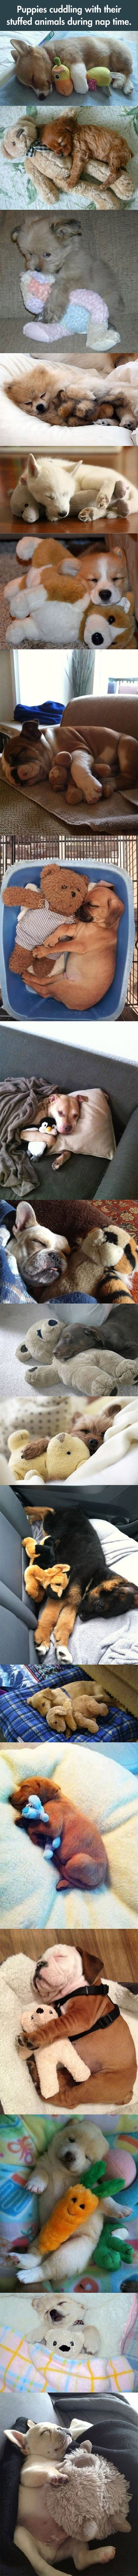 Puppies cuddling with their stuffed animals during nap time.  Neeny.com - Funny Pictures - Funny Photos - Funny Images - Funny Pics #dogs #puppy